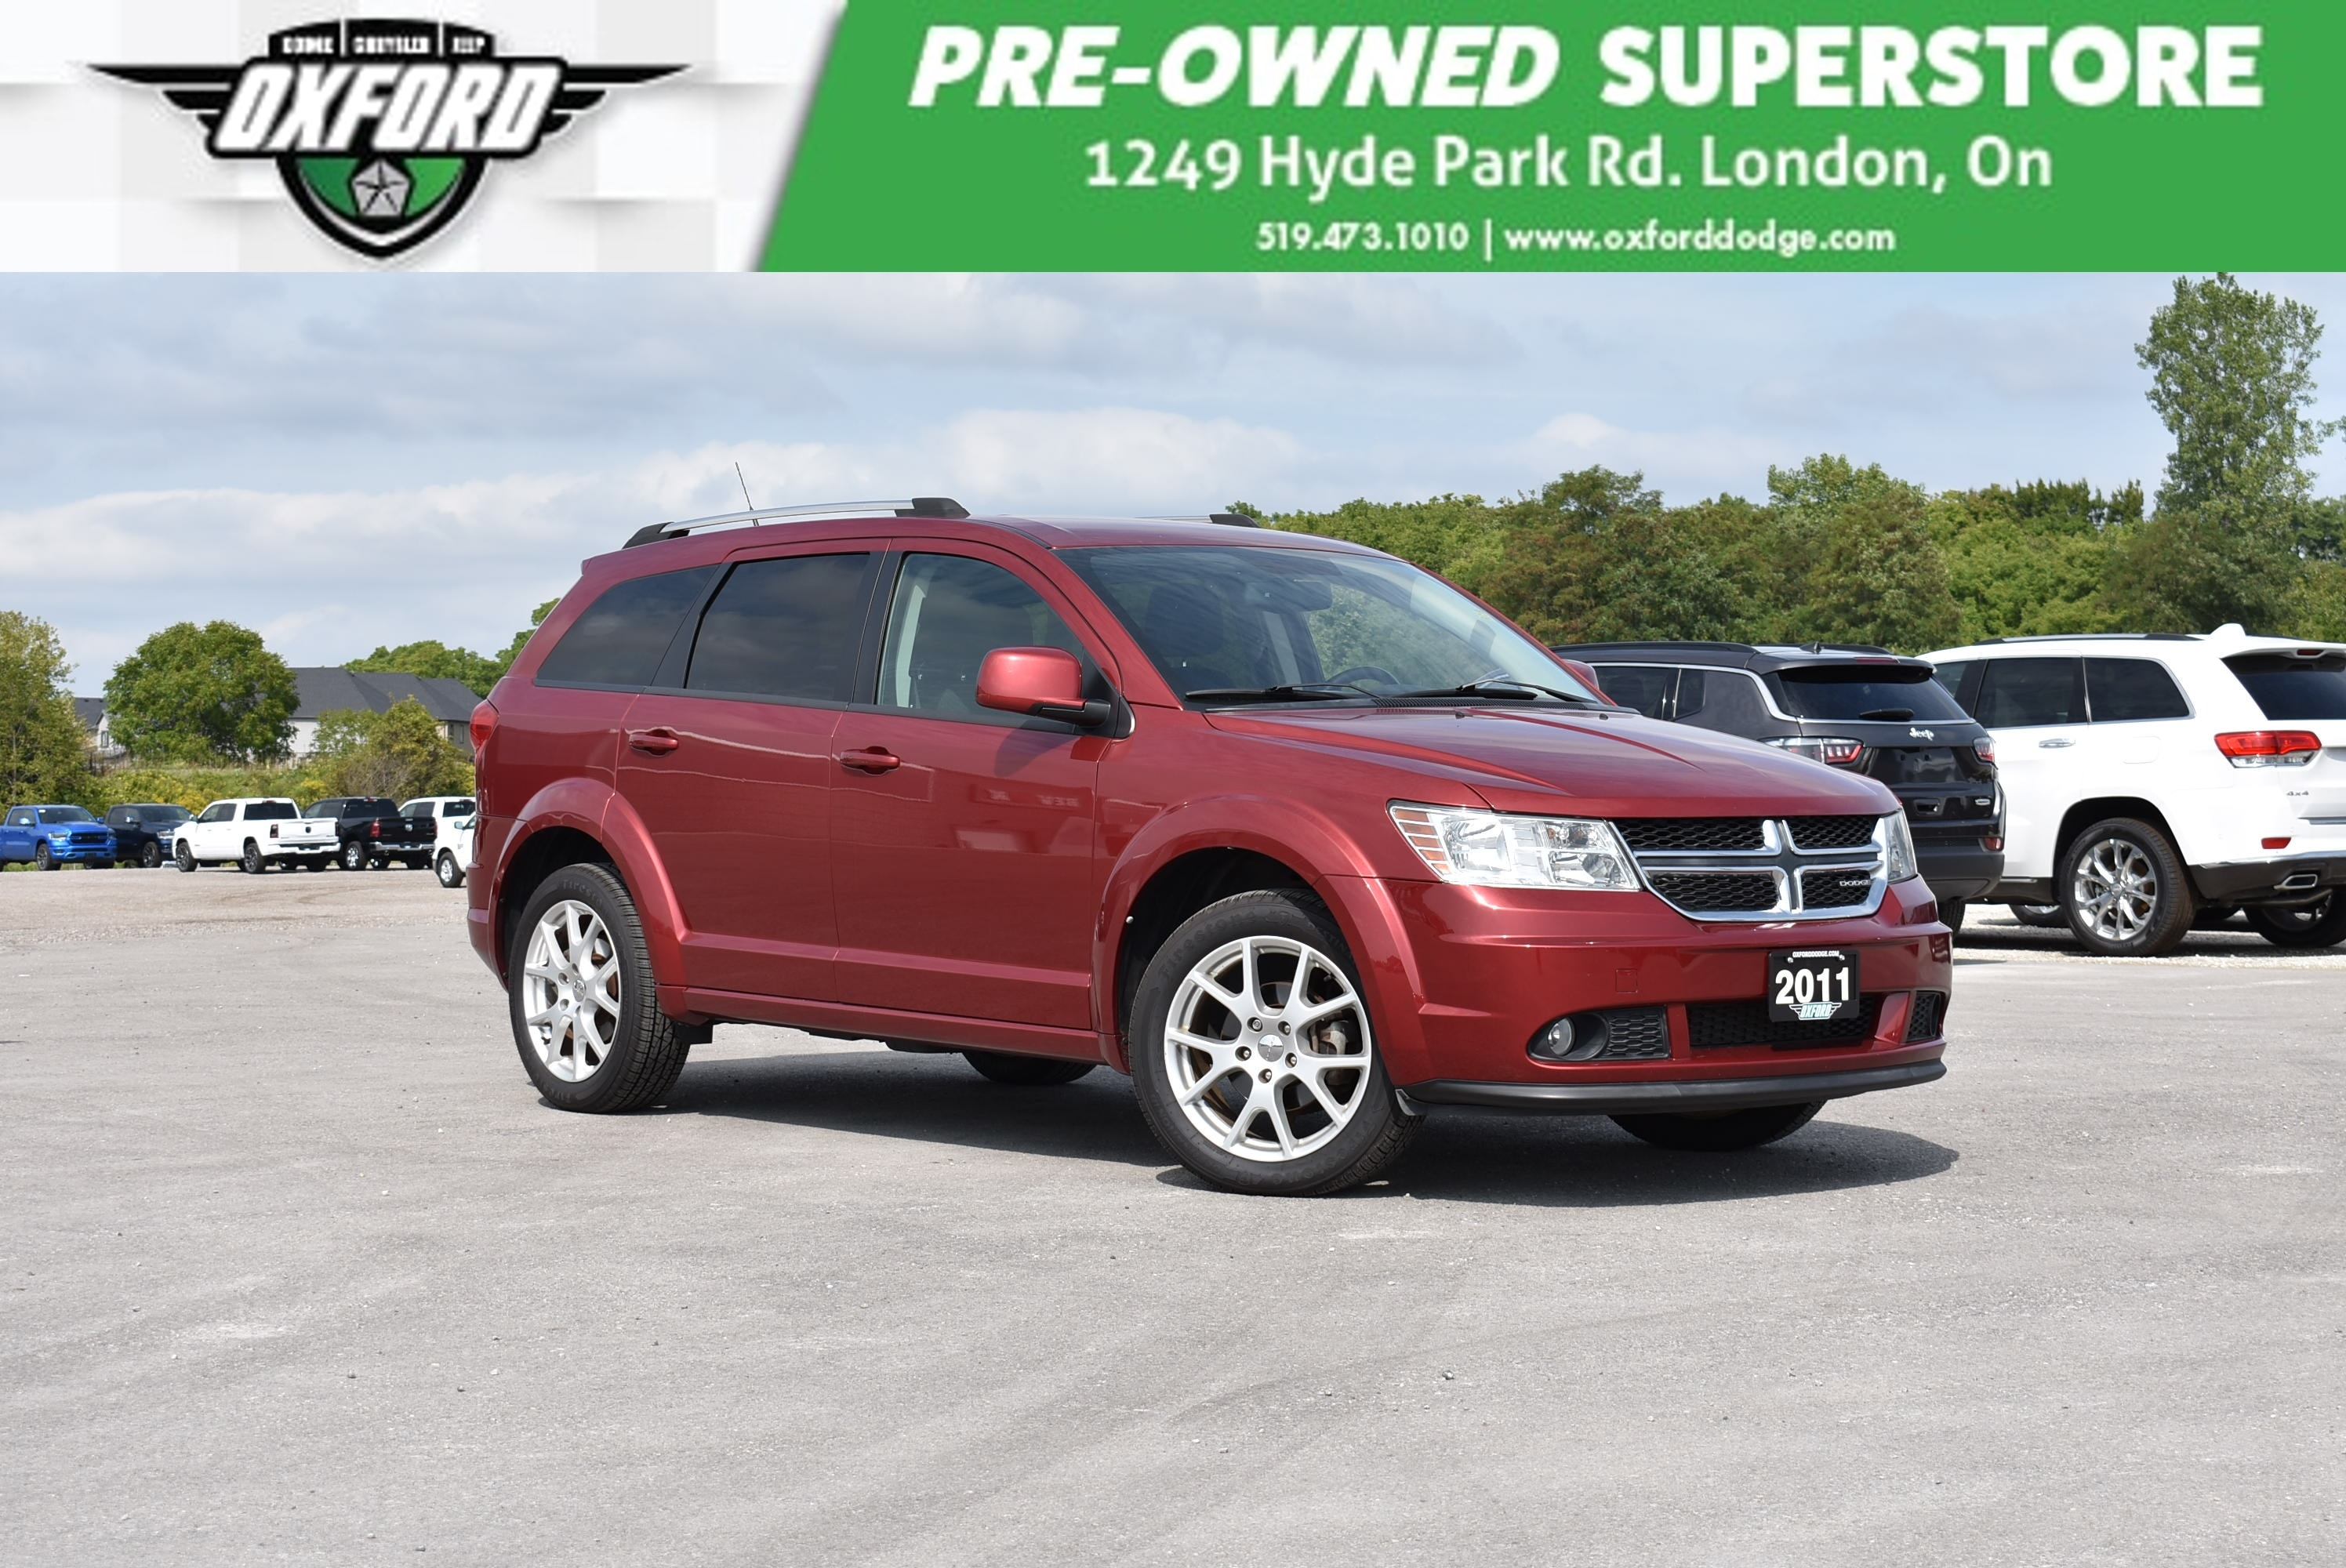 used 2011 Dodge Journey car, priced at $13,988